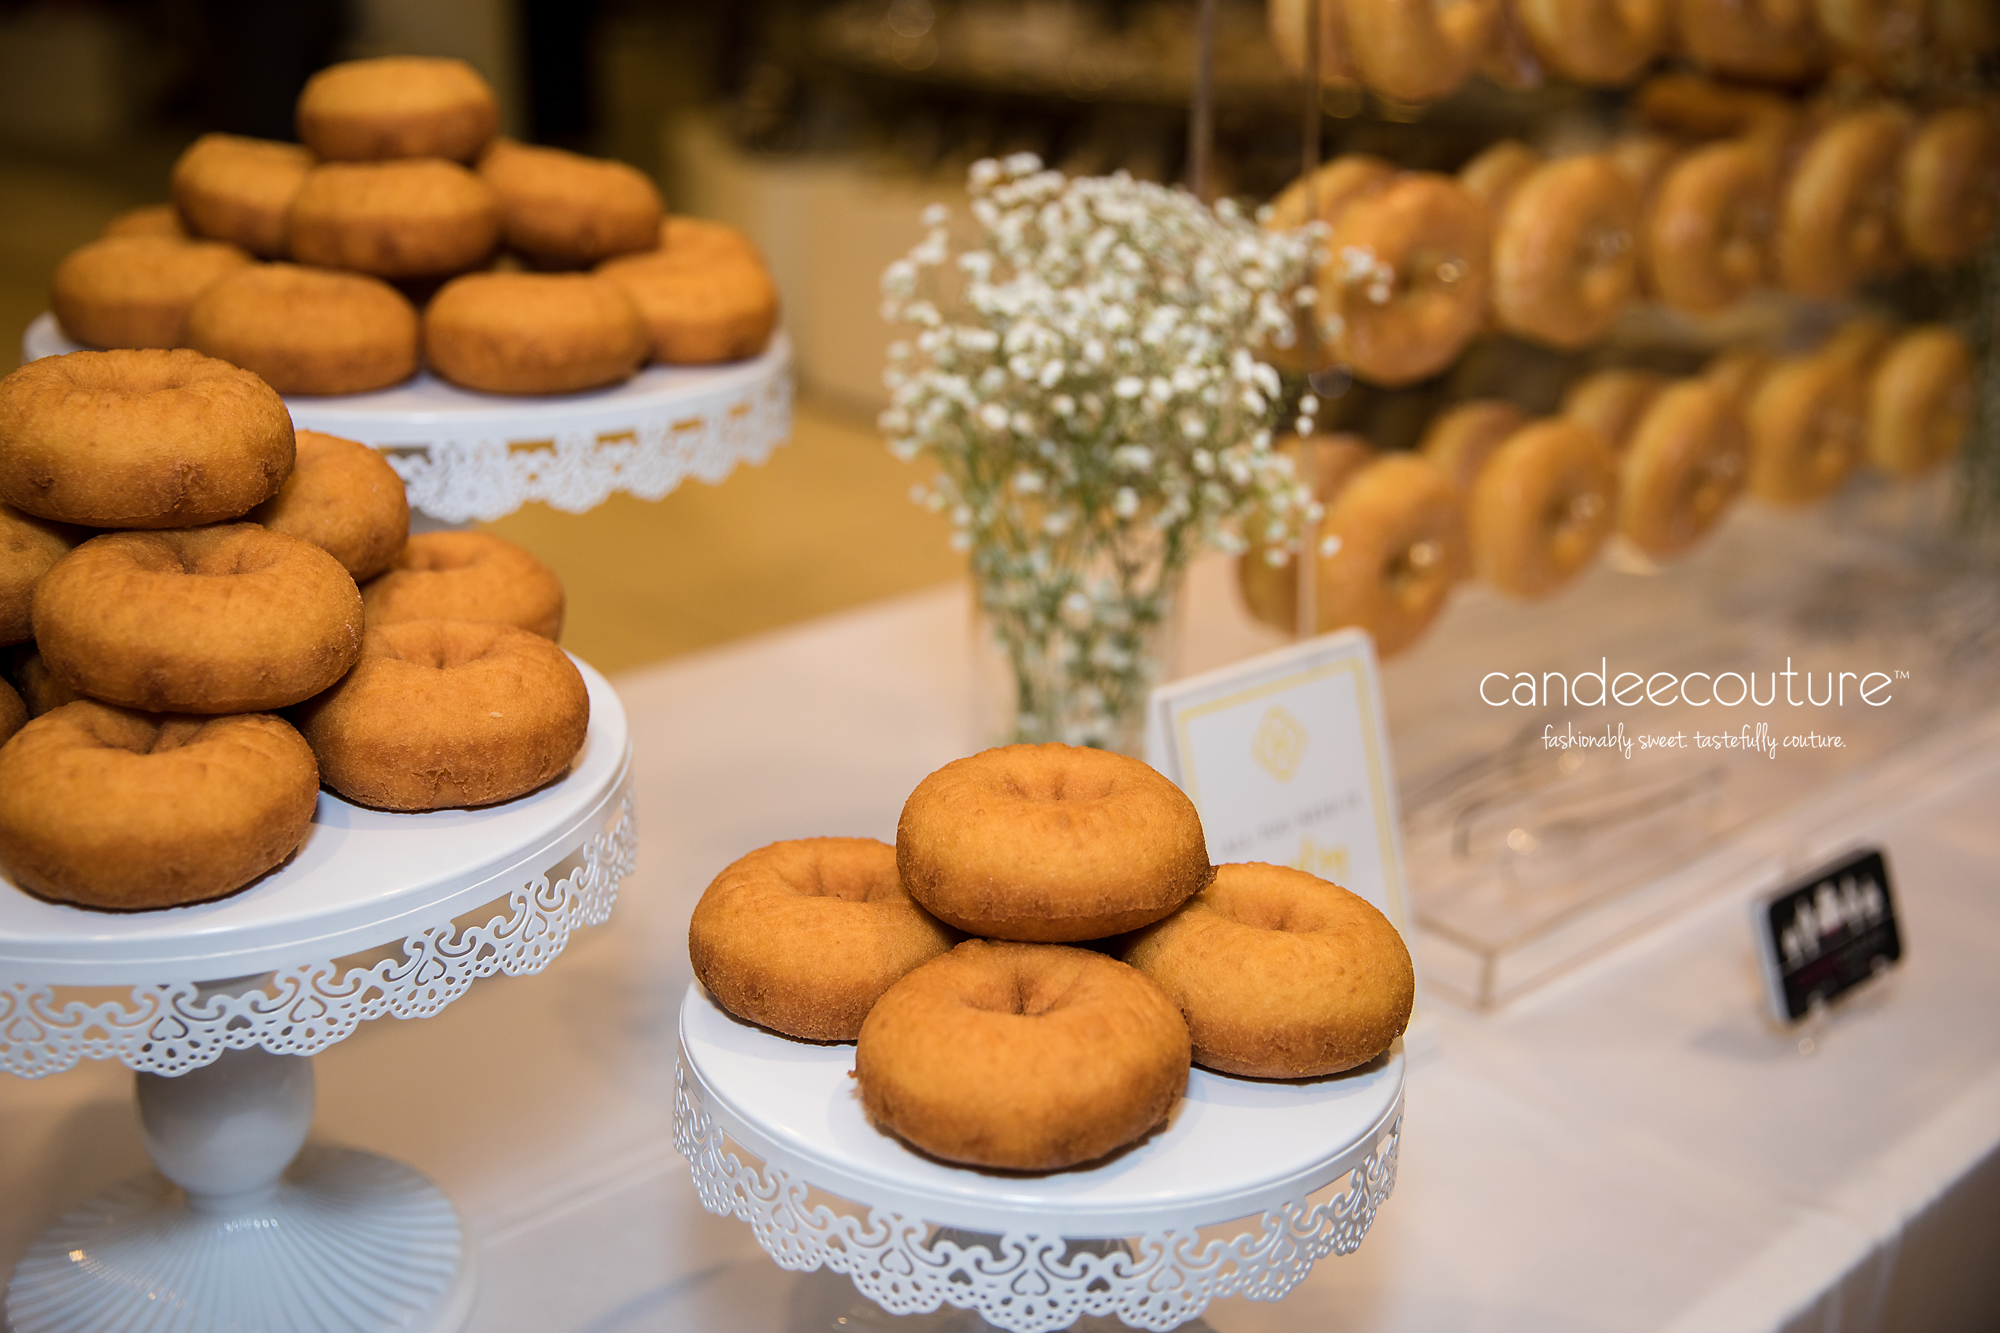 Donuts, corporate event, donut display, donut stands, glazed donuts, cake donuts, plain donuts, donut wall, donut bar,